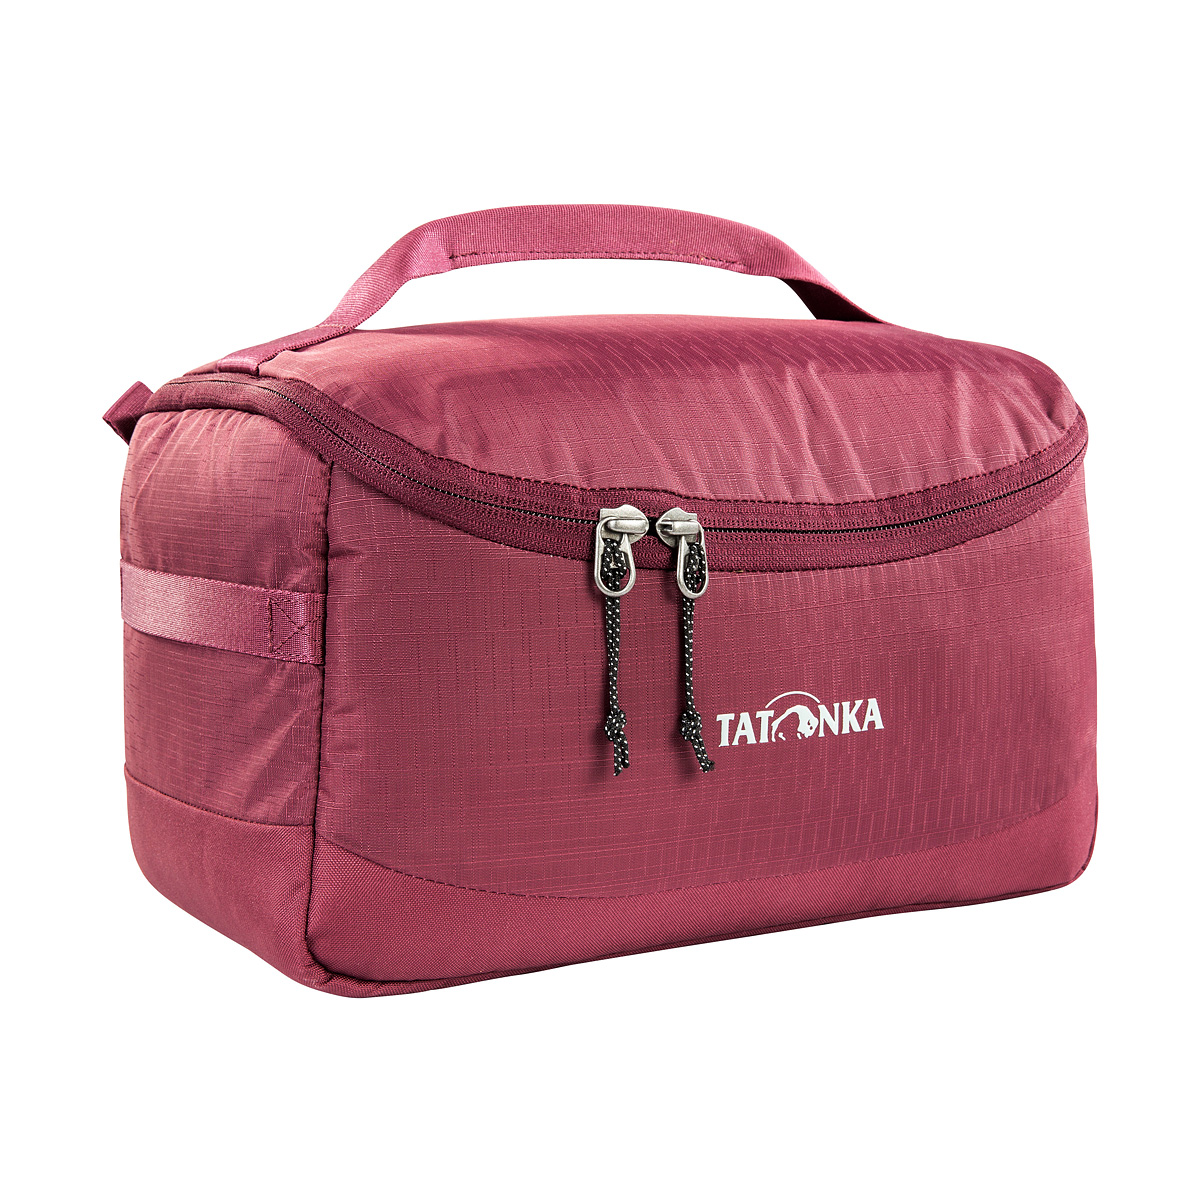 Tatonka Wash Case bourdeaux neceser